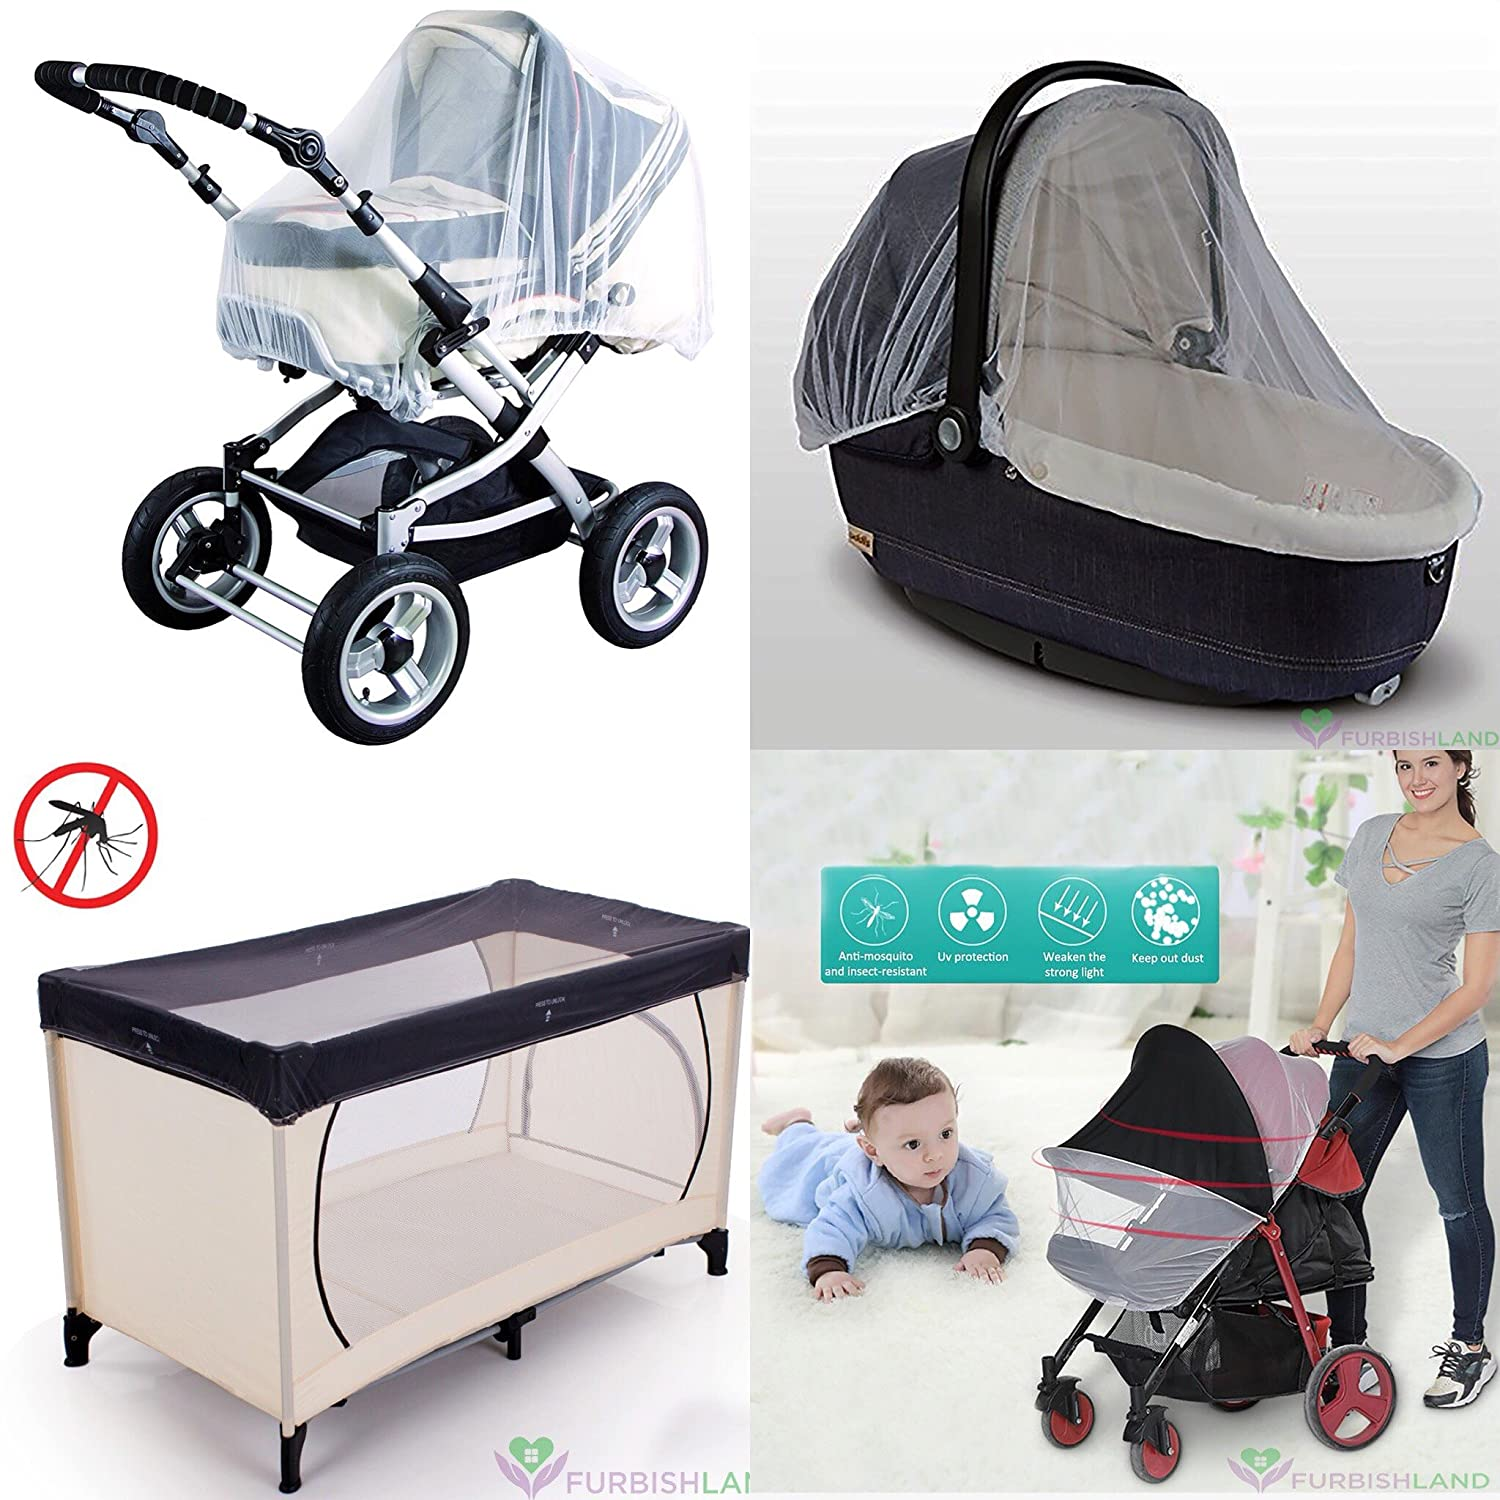 Prams Pram Net Pram Insect Nets Tinabless Universal Mosquito Net for Pushchair Buggy and Carrycot White